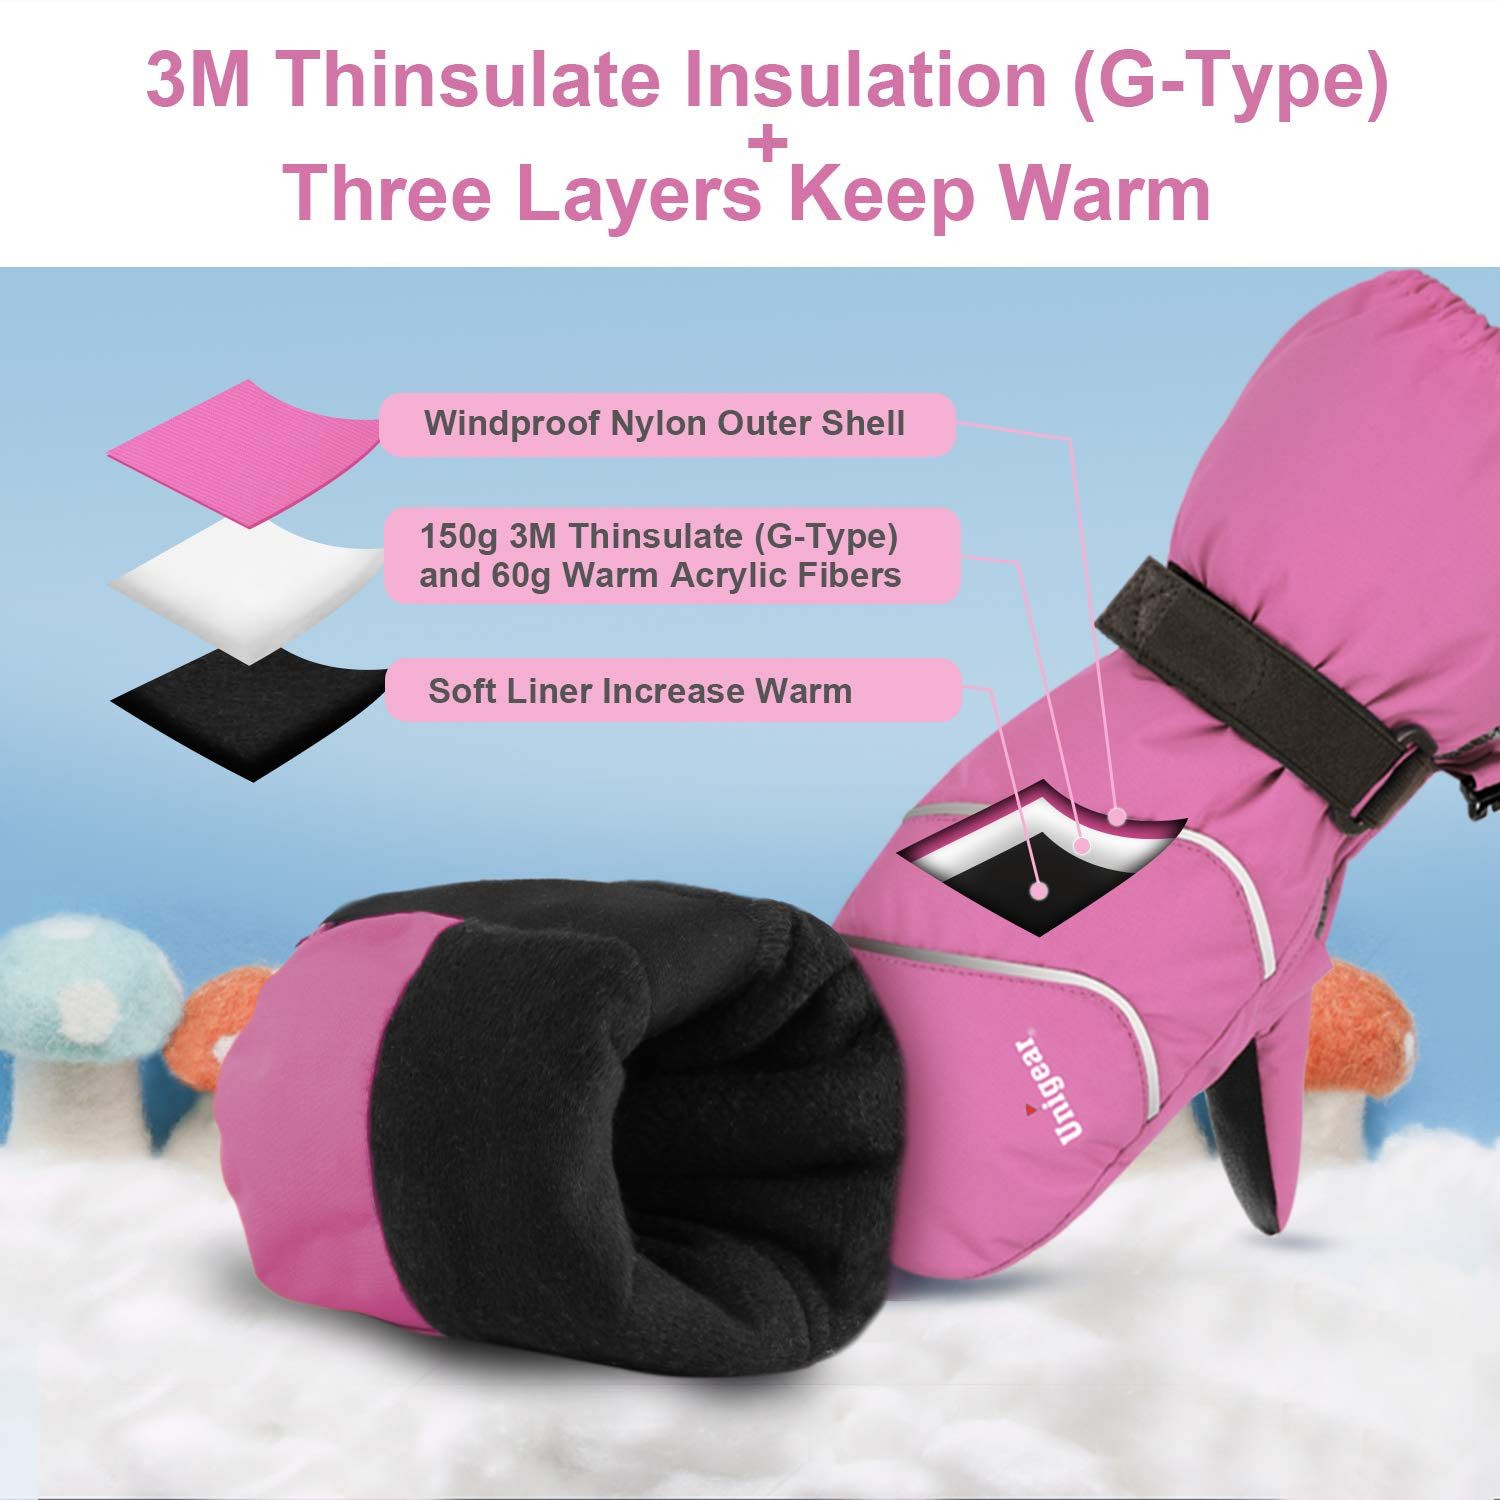 Unigear Kids Ski Mittens Waterproof Winter Snow Thinsulate Mittens with String for Boys Girls Pink, 4-6Y